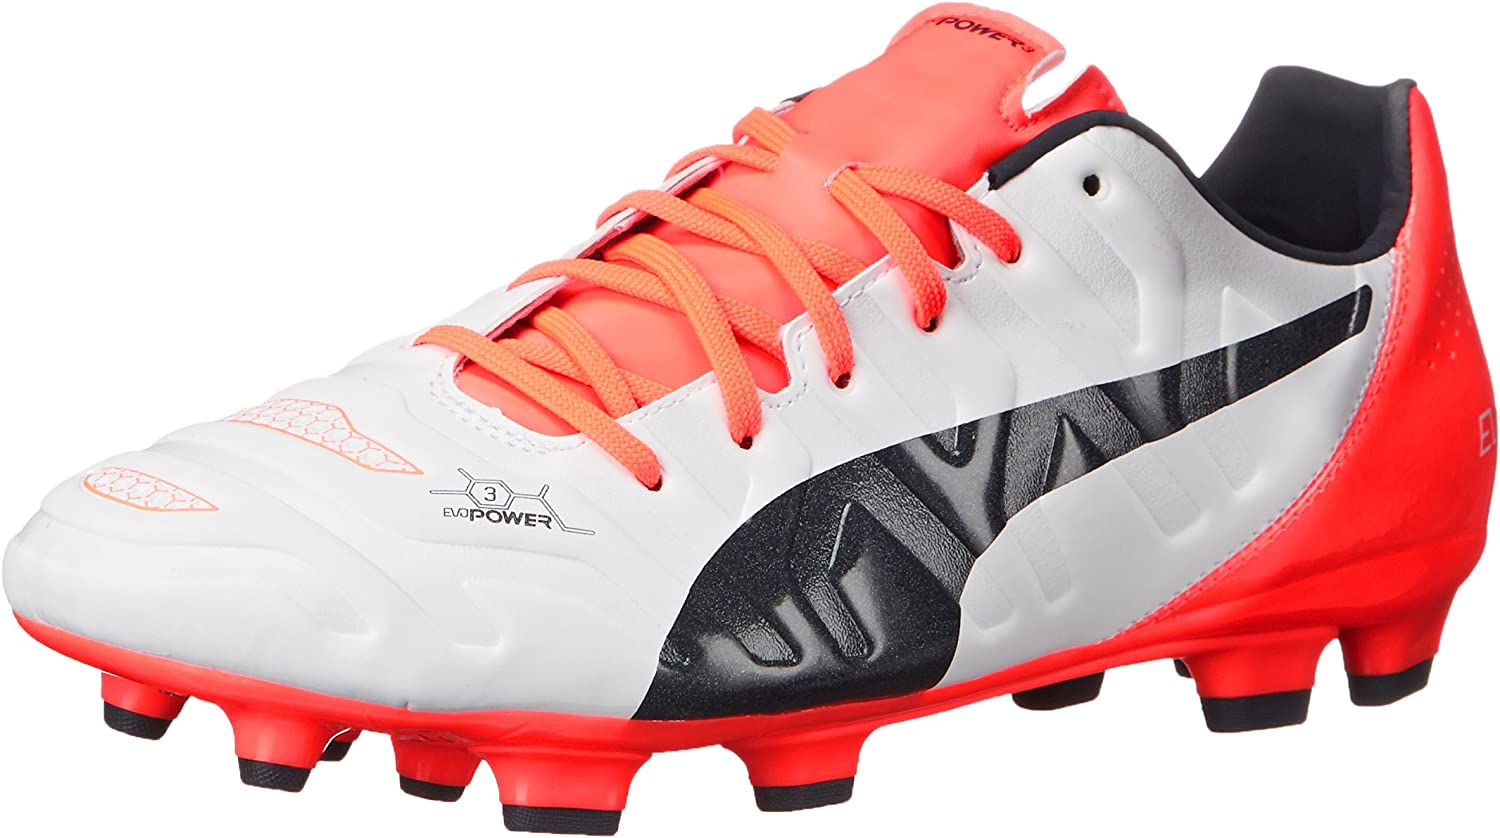 PUMA Men's Evopower 3.2 Firm Ground Soccer Cleat